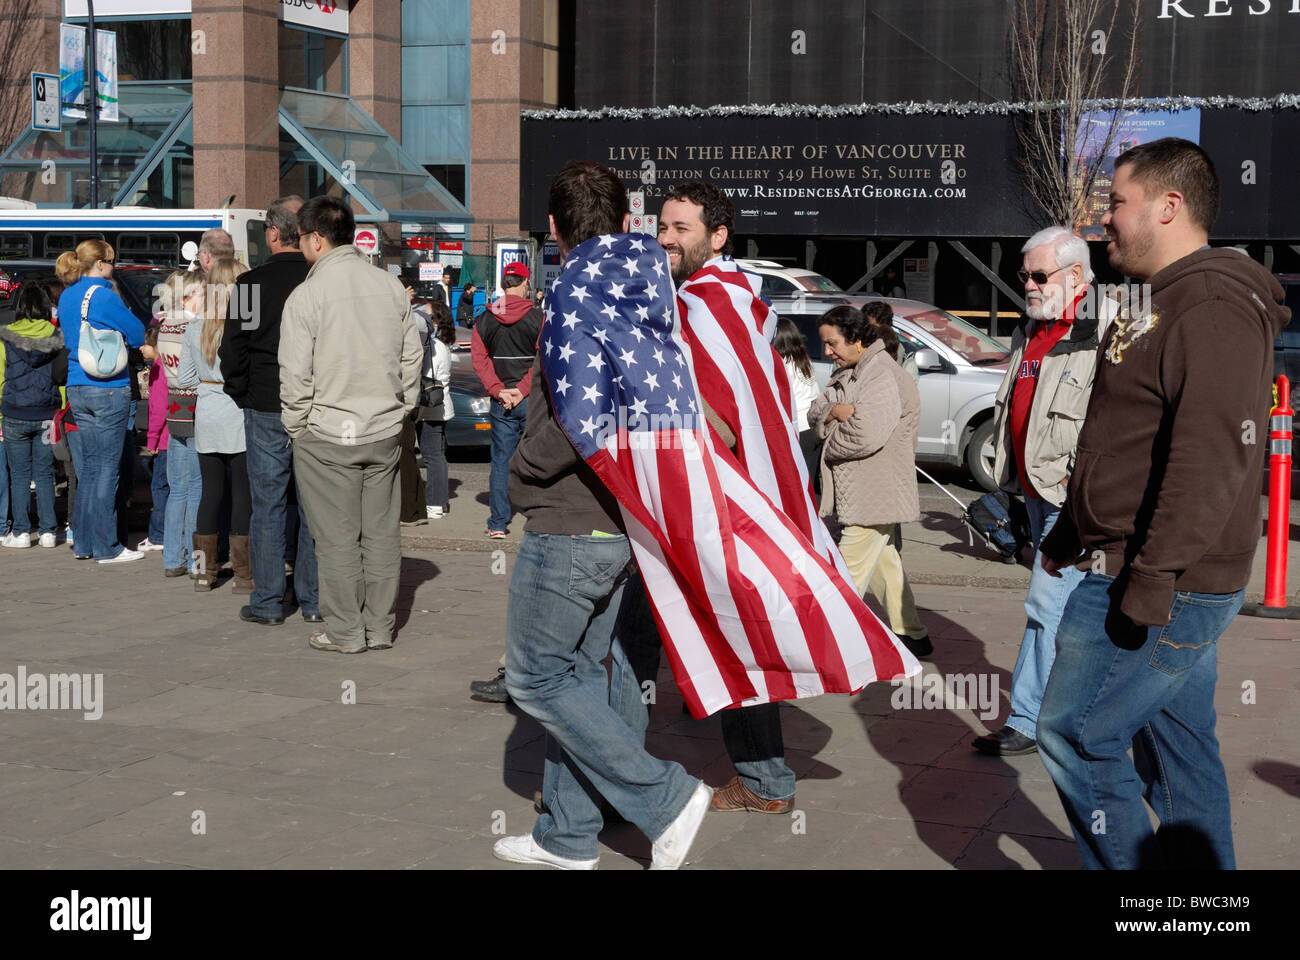 Two American patriots draped in American flags walk the streets of Vancouver. - Stock Image